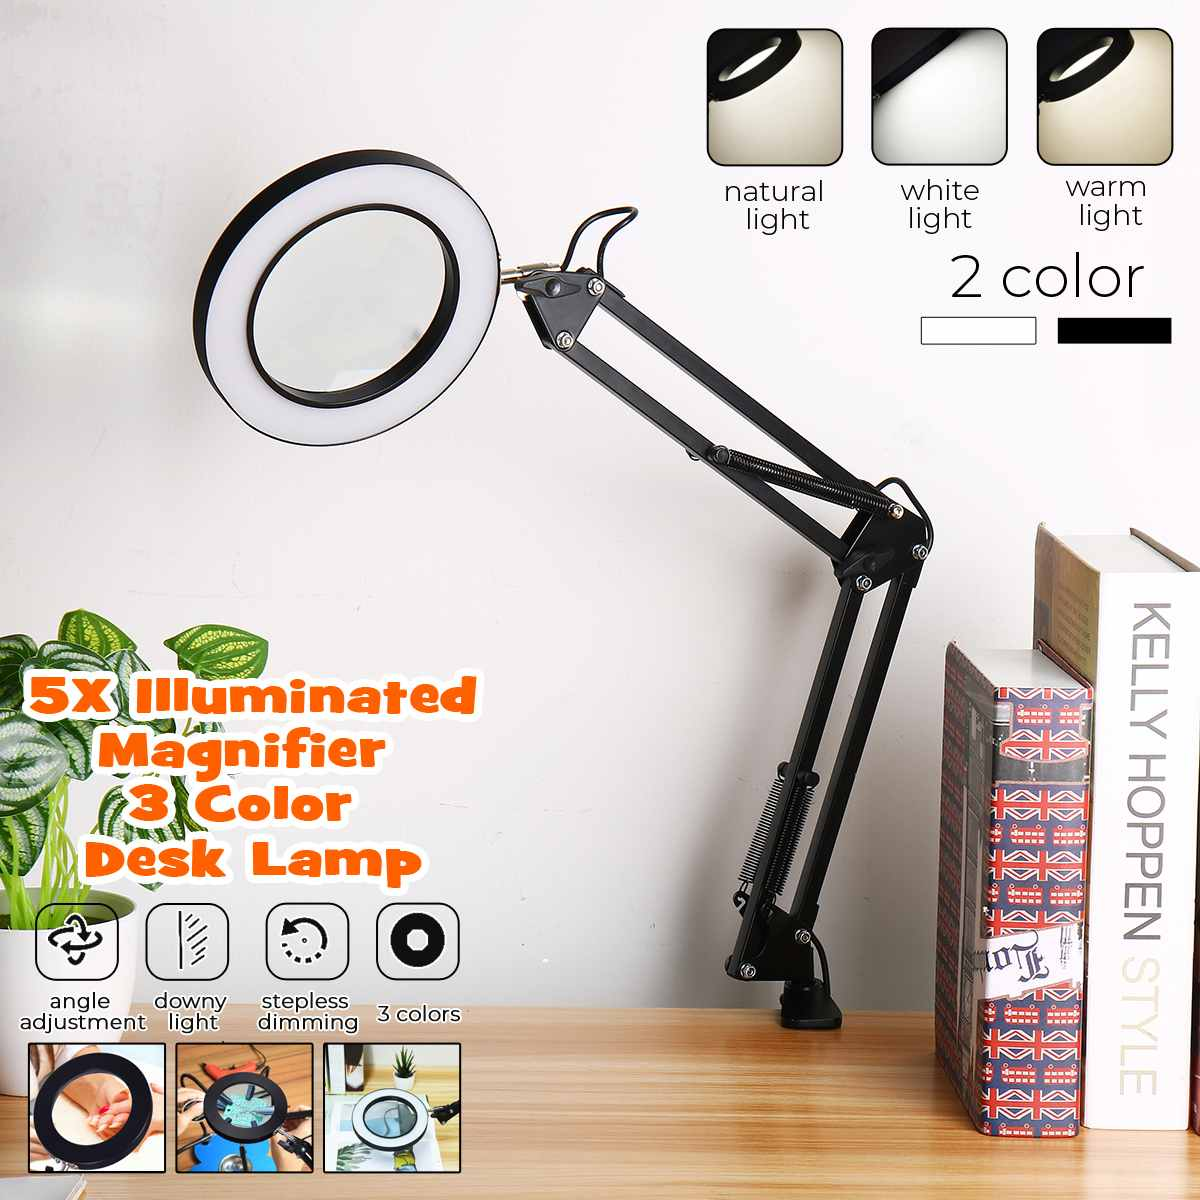 5X USB Magnifying Glass With LED Light Rotateble Flexible Table Clamp Third Hand Soldering/Reading/Jewelry Magnifier Desk Lamp